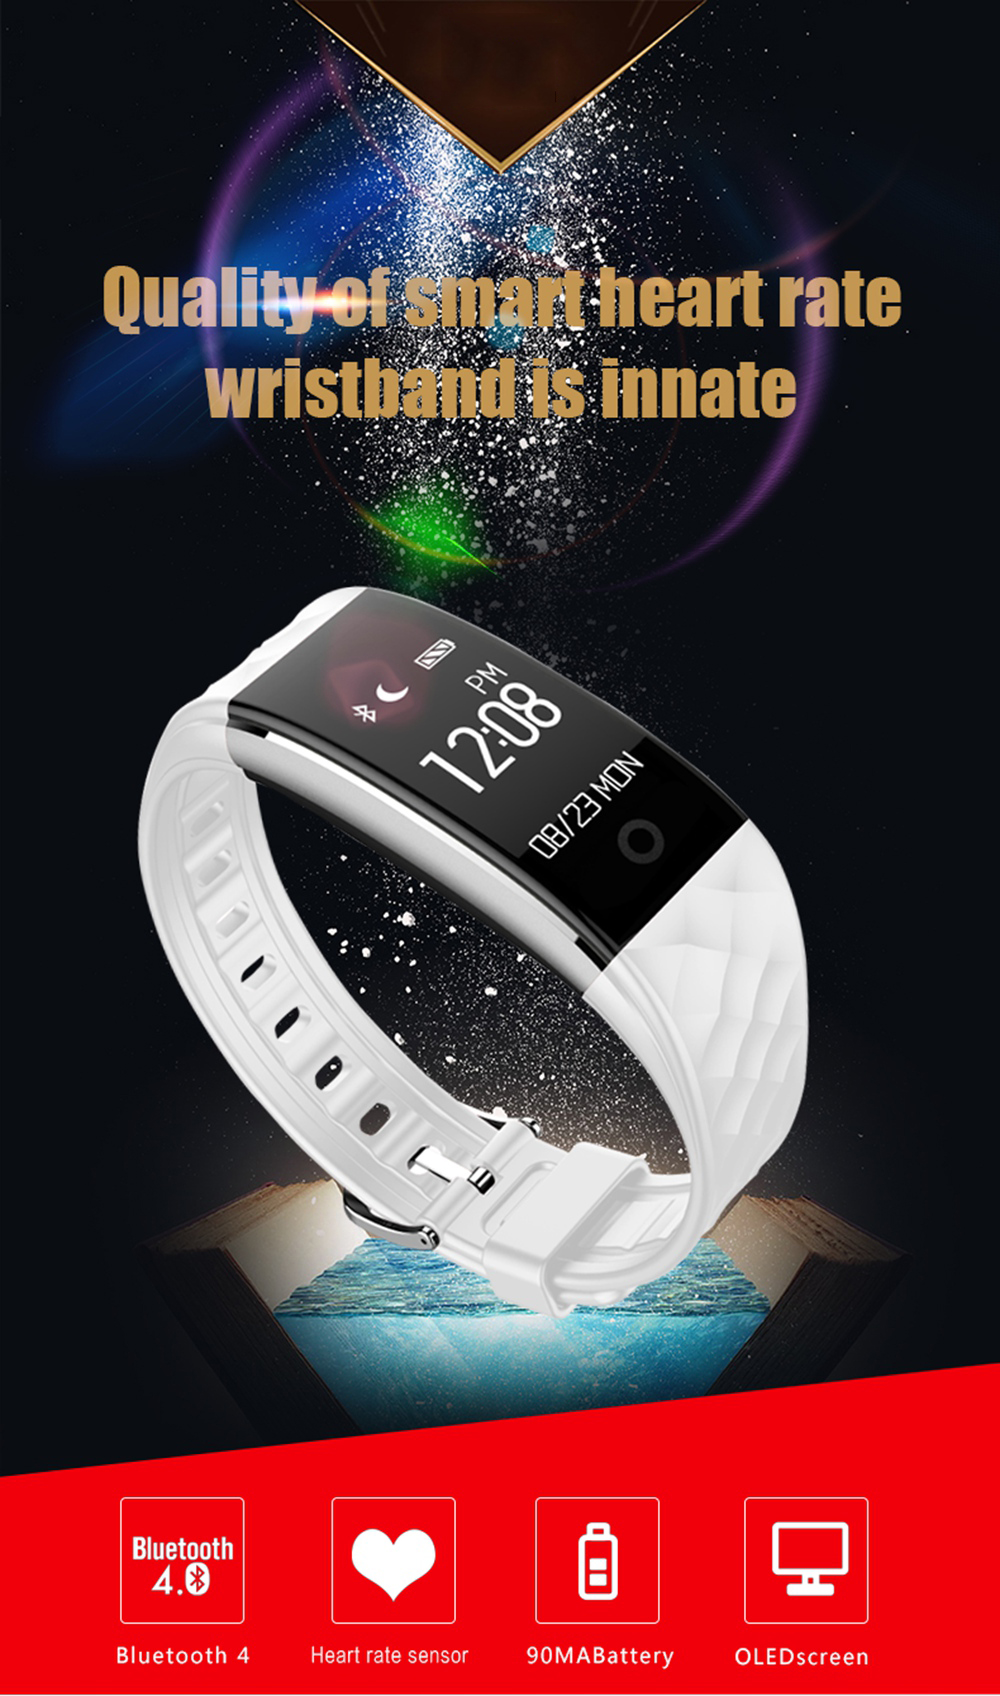 Fitness Tracker St10 Smart Wristband Bracelet IP67 Waterproof Wireless Bluetooth Call Remind Auto Sleep Monitor Sport Pedometer Activity Tracker for Android IOS Phones